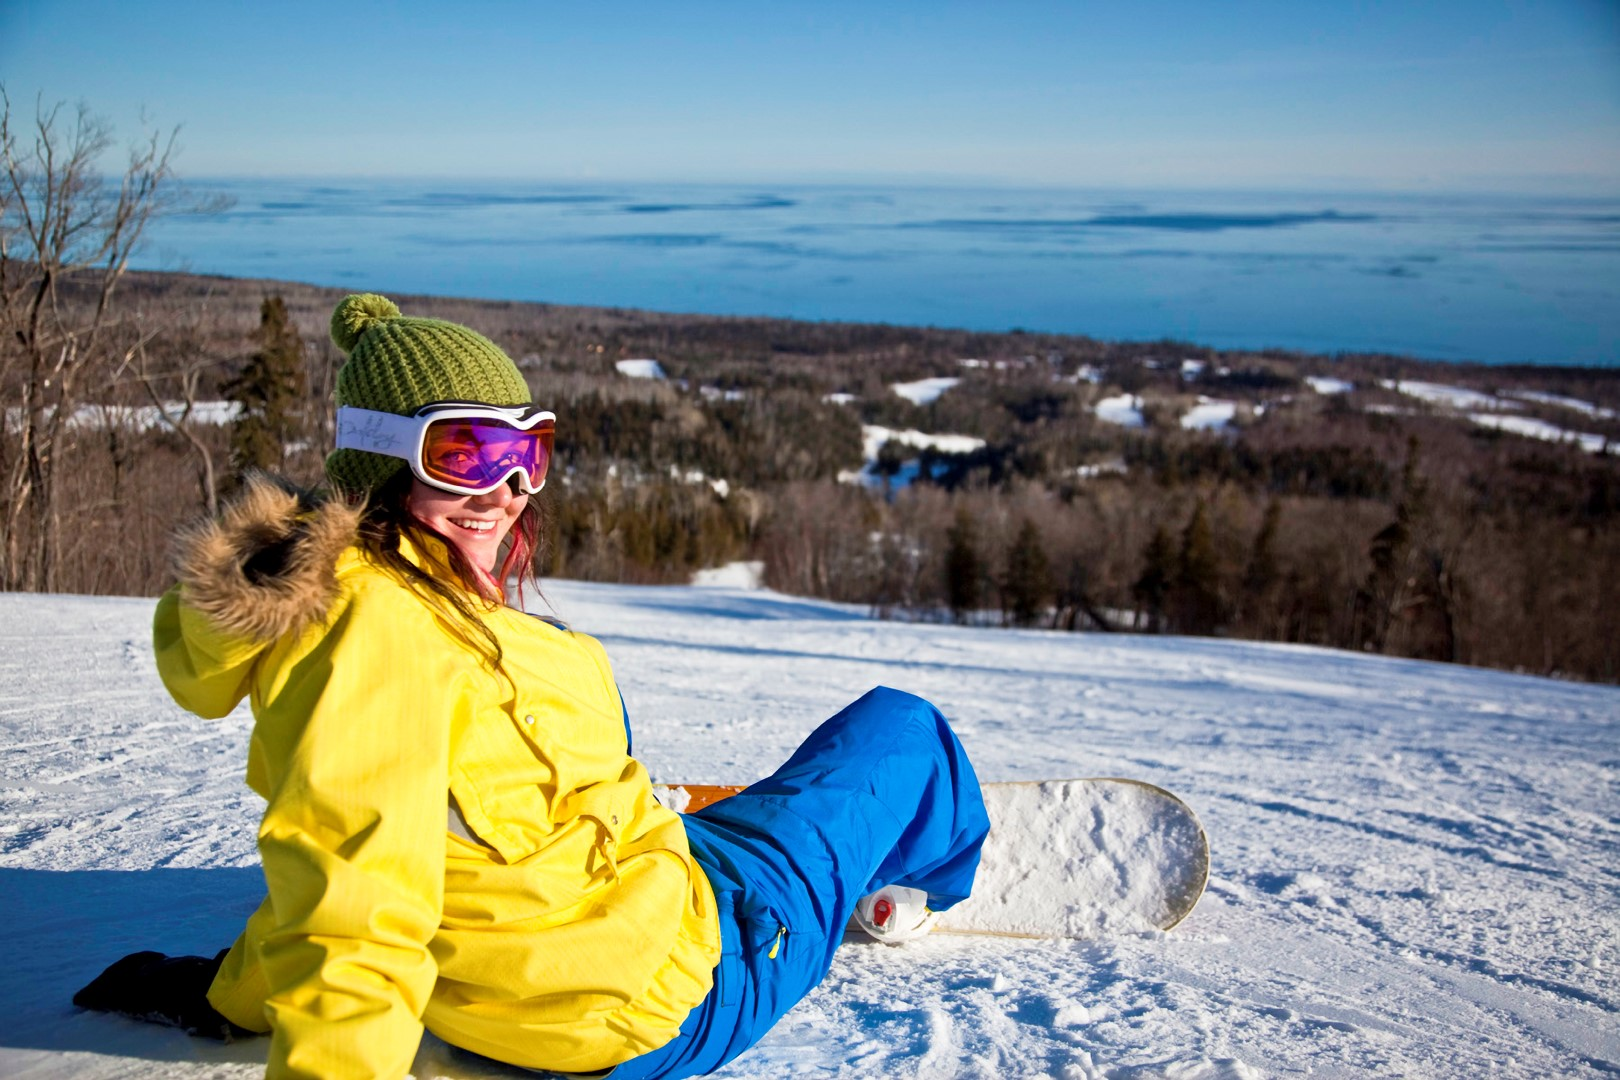 Snowboarding with an ocean view? No, it's Lake Superior, the world's largest freshwater lake (by surface area), as viewed from a slope at the Lutsen Ski Resort. Stephan Hoglund Photography.